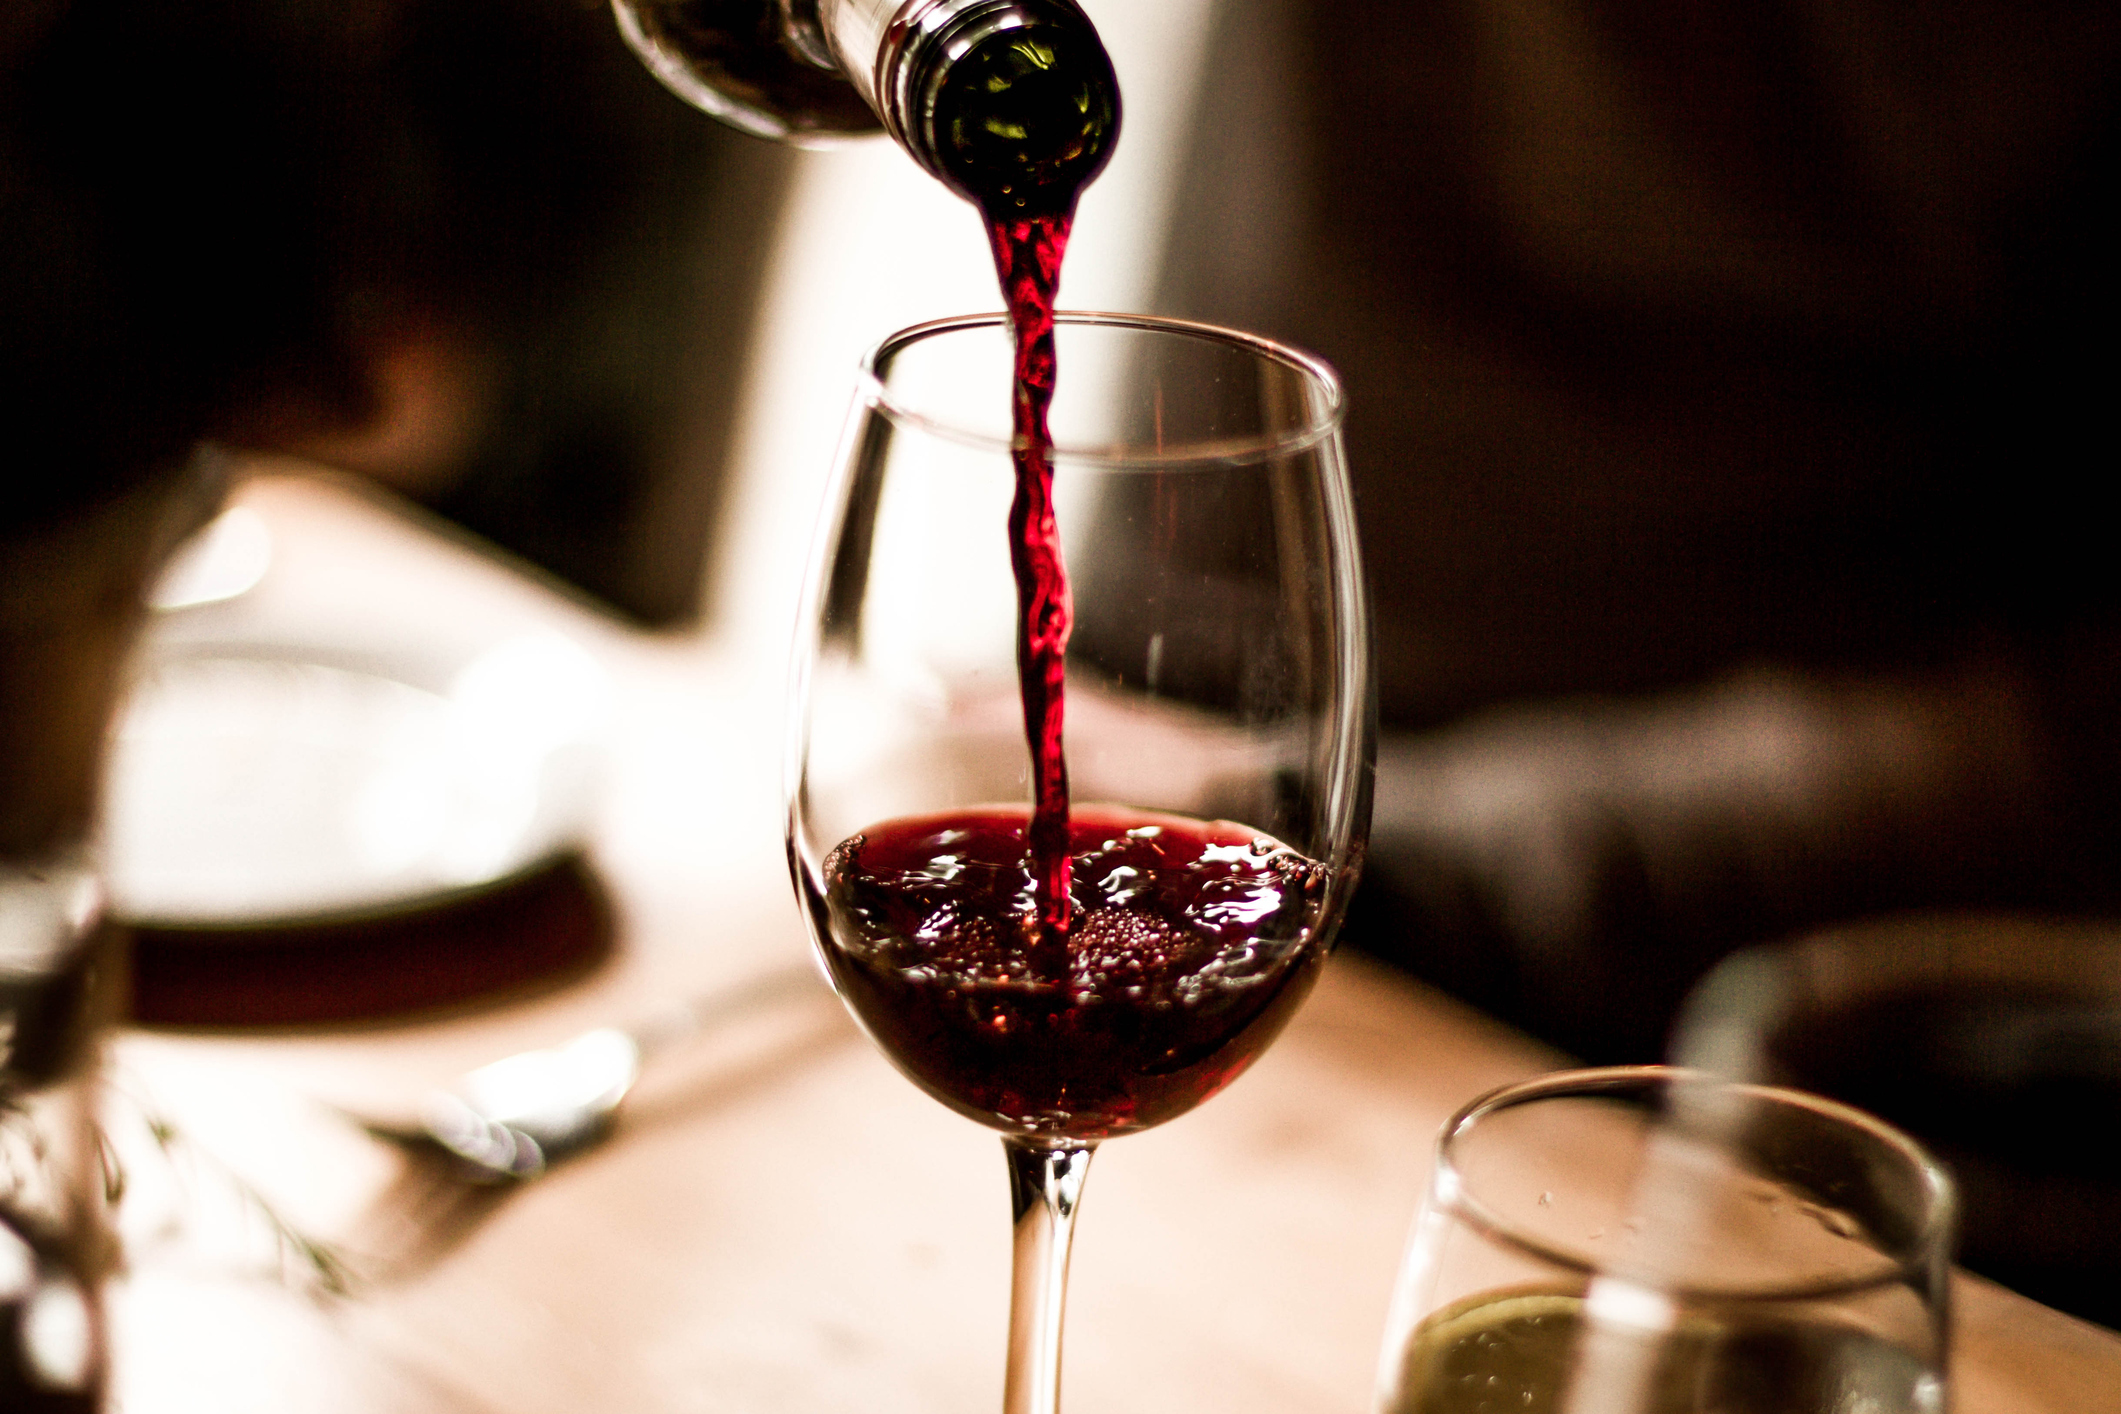 pouring_red_wine_in_glass.jpg